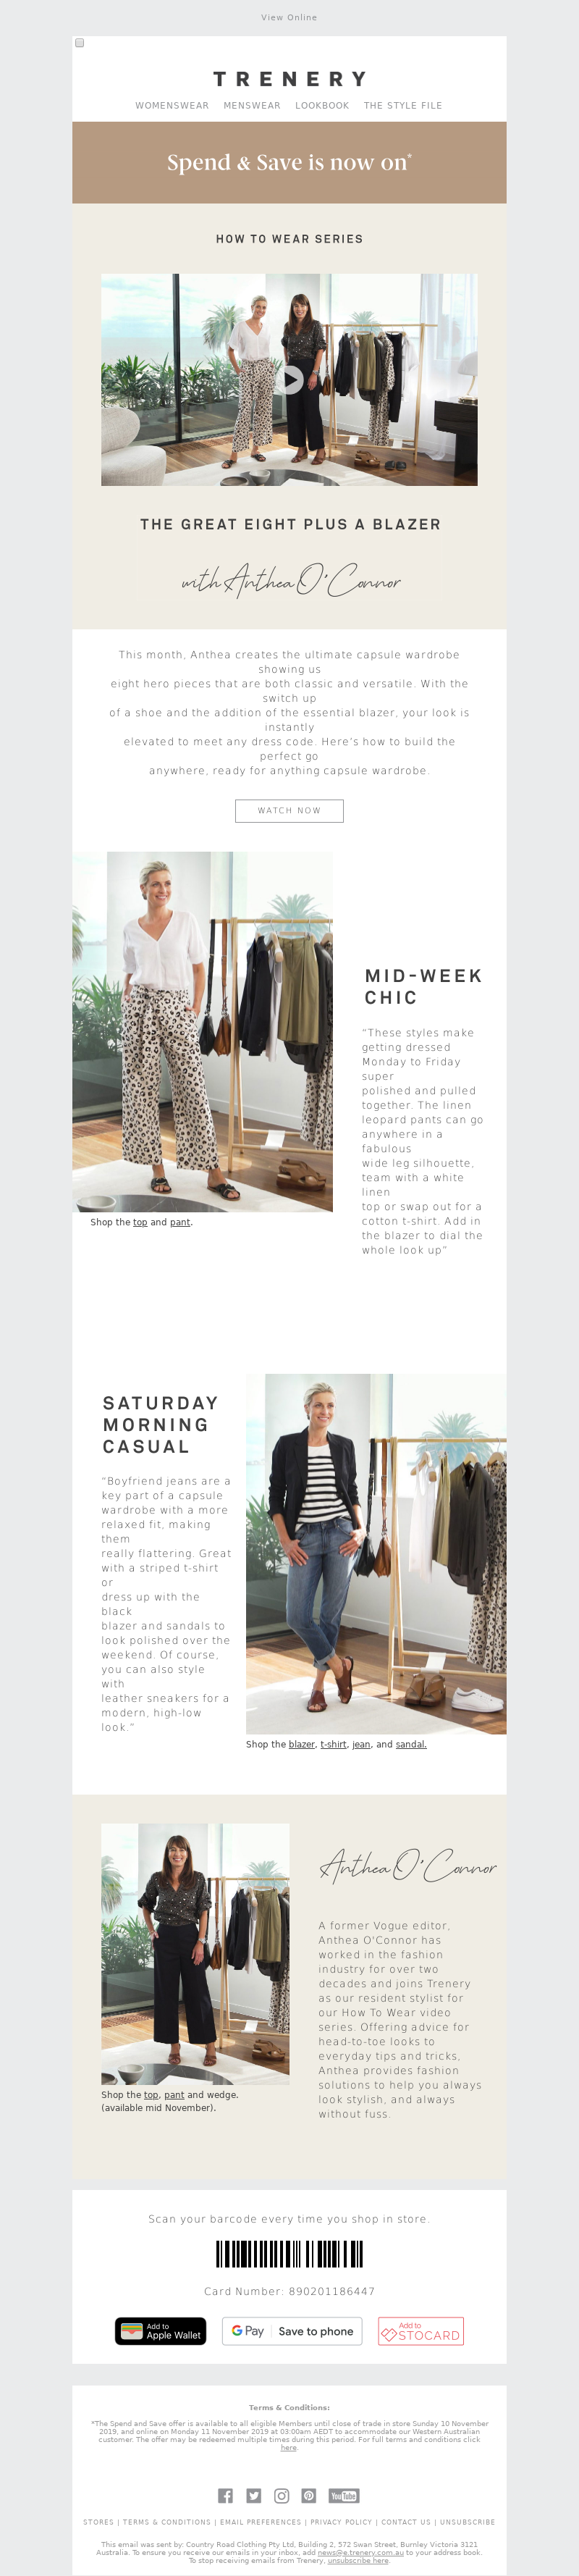 Country Road (AU) - How to build the ultimate capsule wardrobe